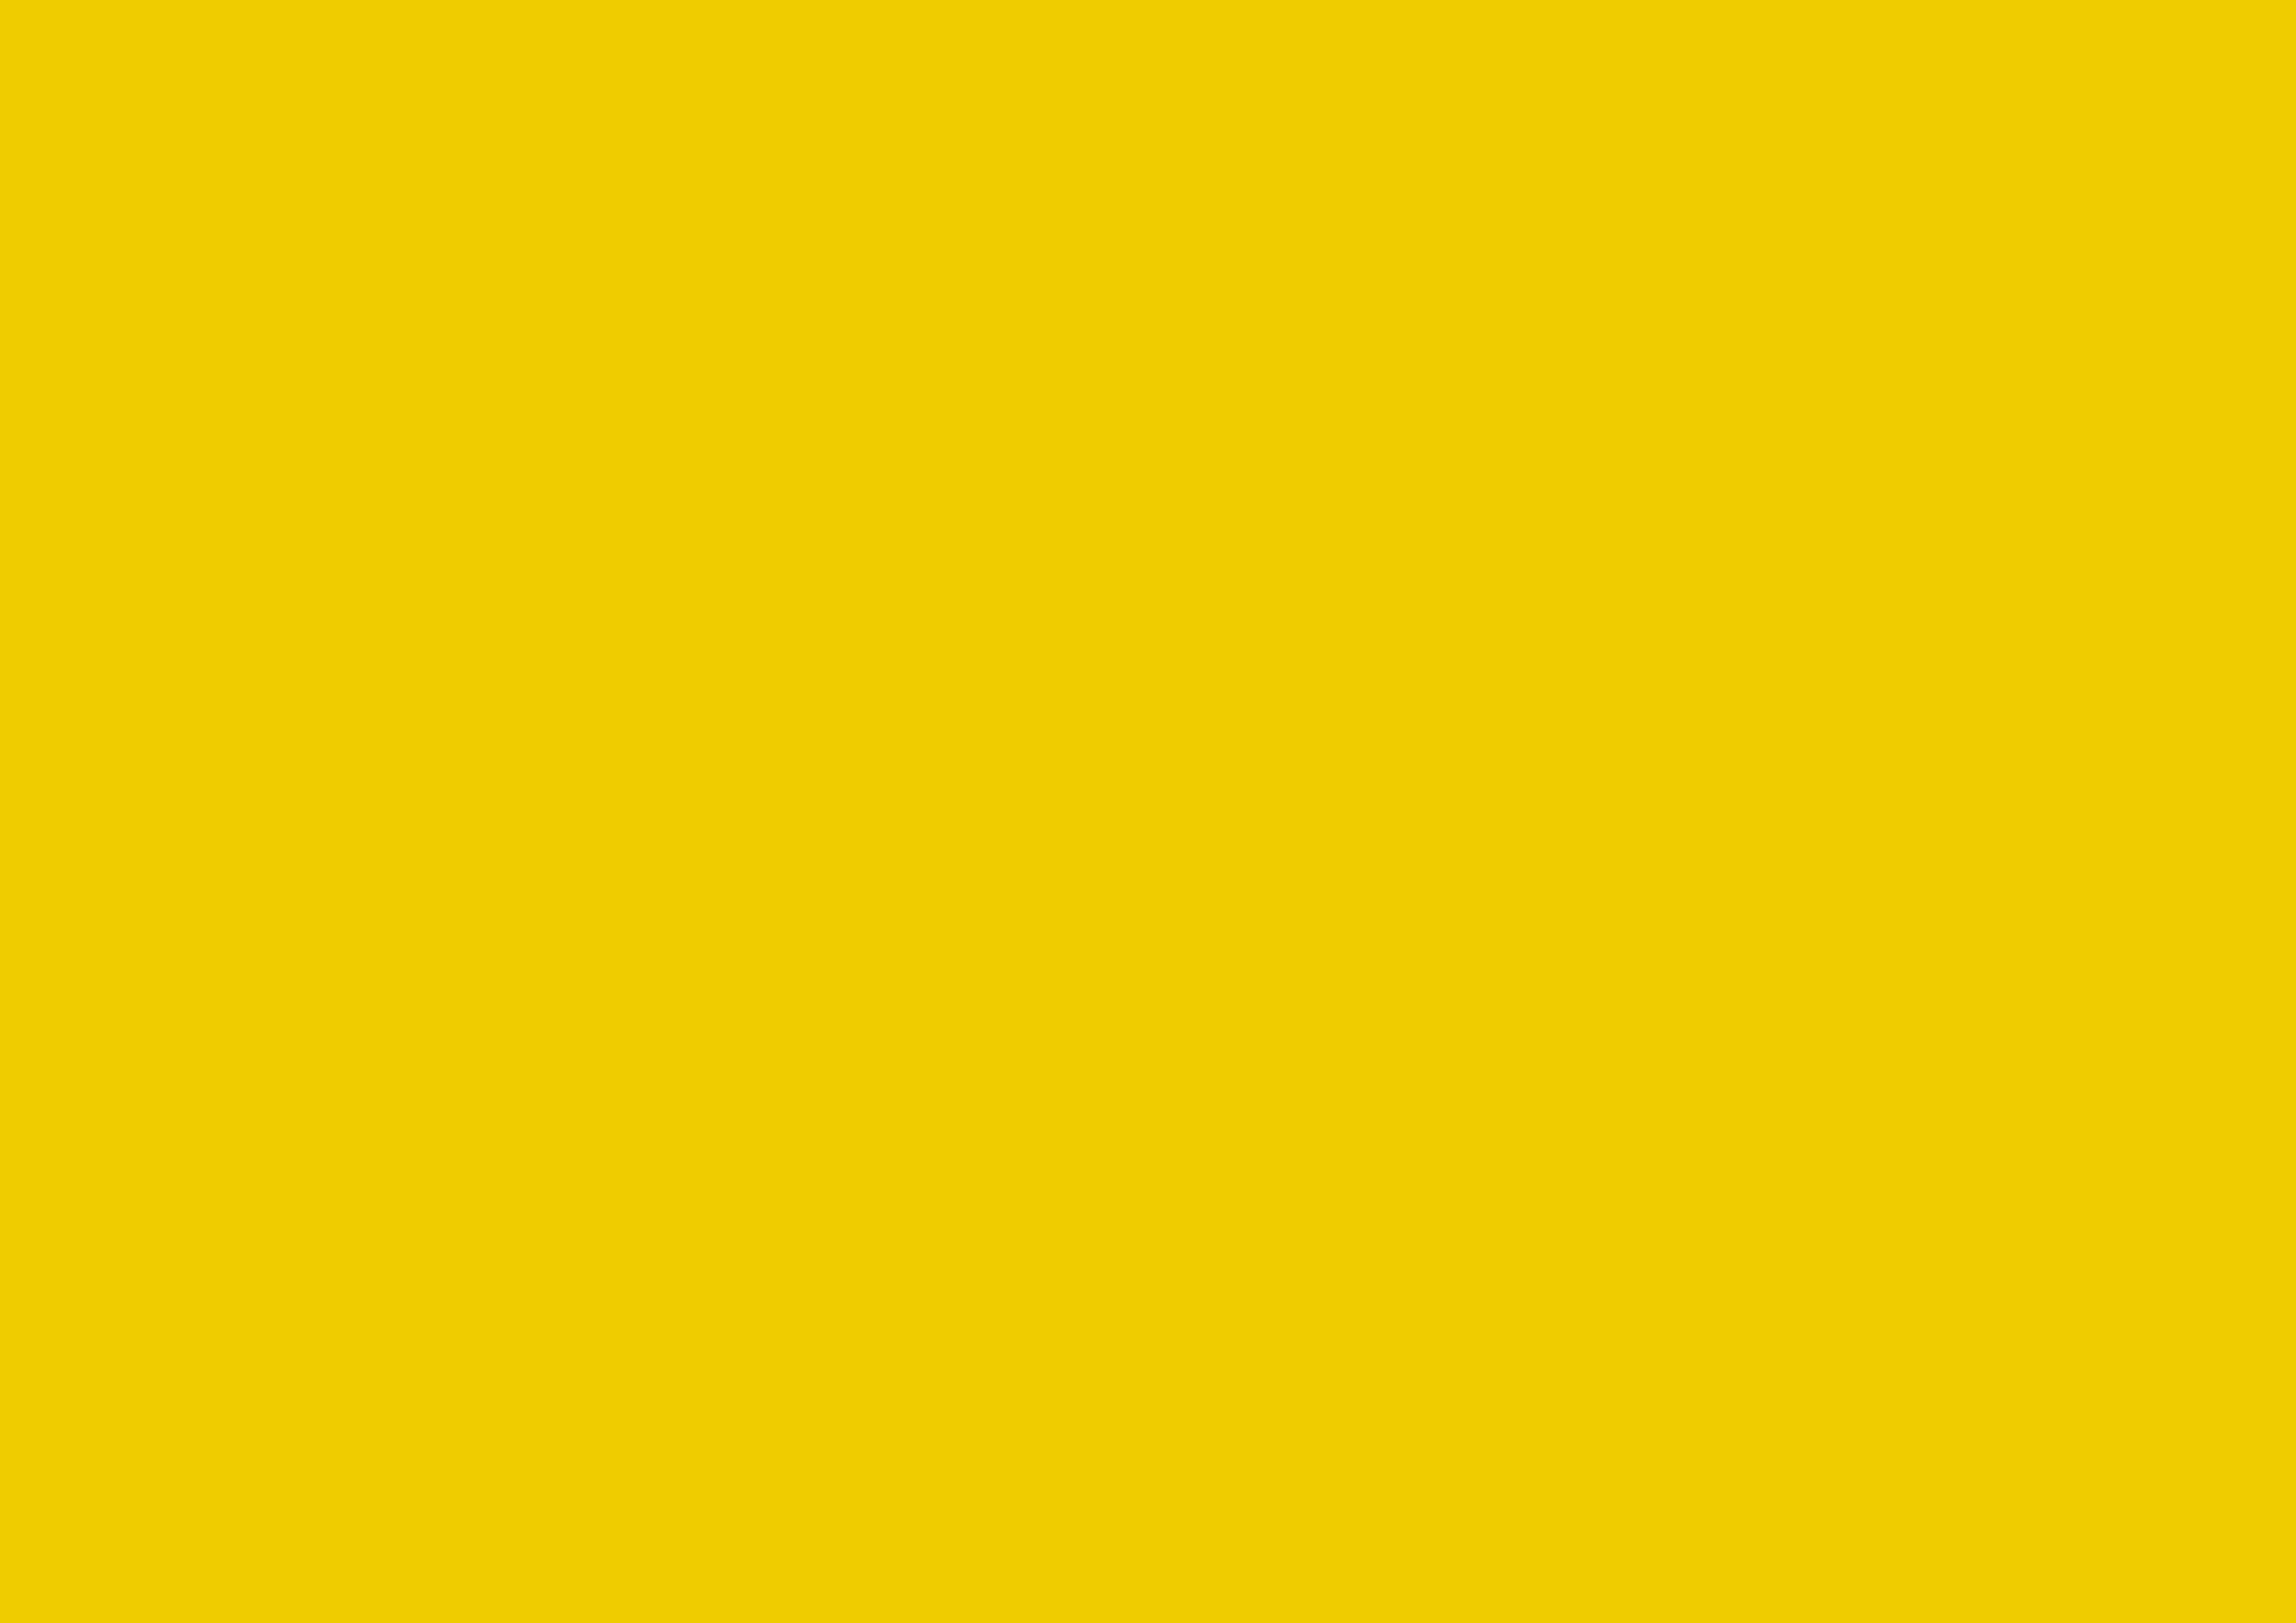 3508x2480 Yellow Munsell Solid Color Background